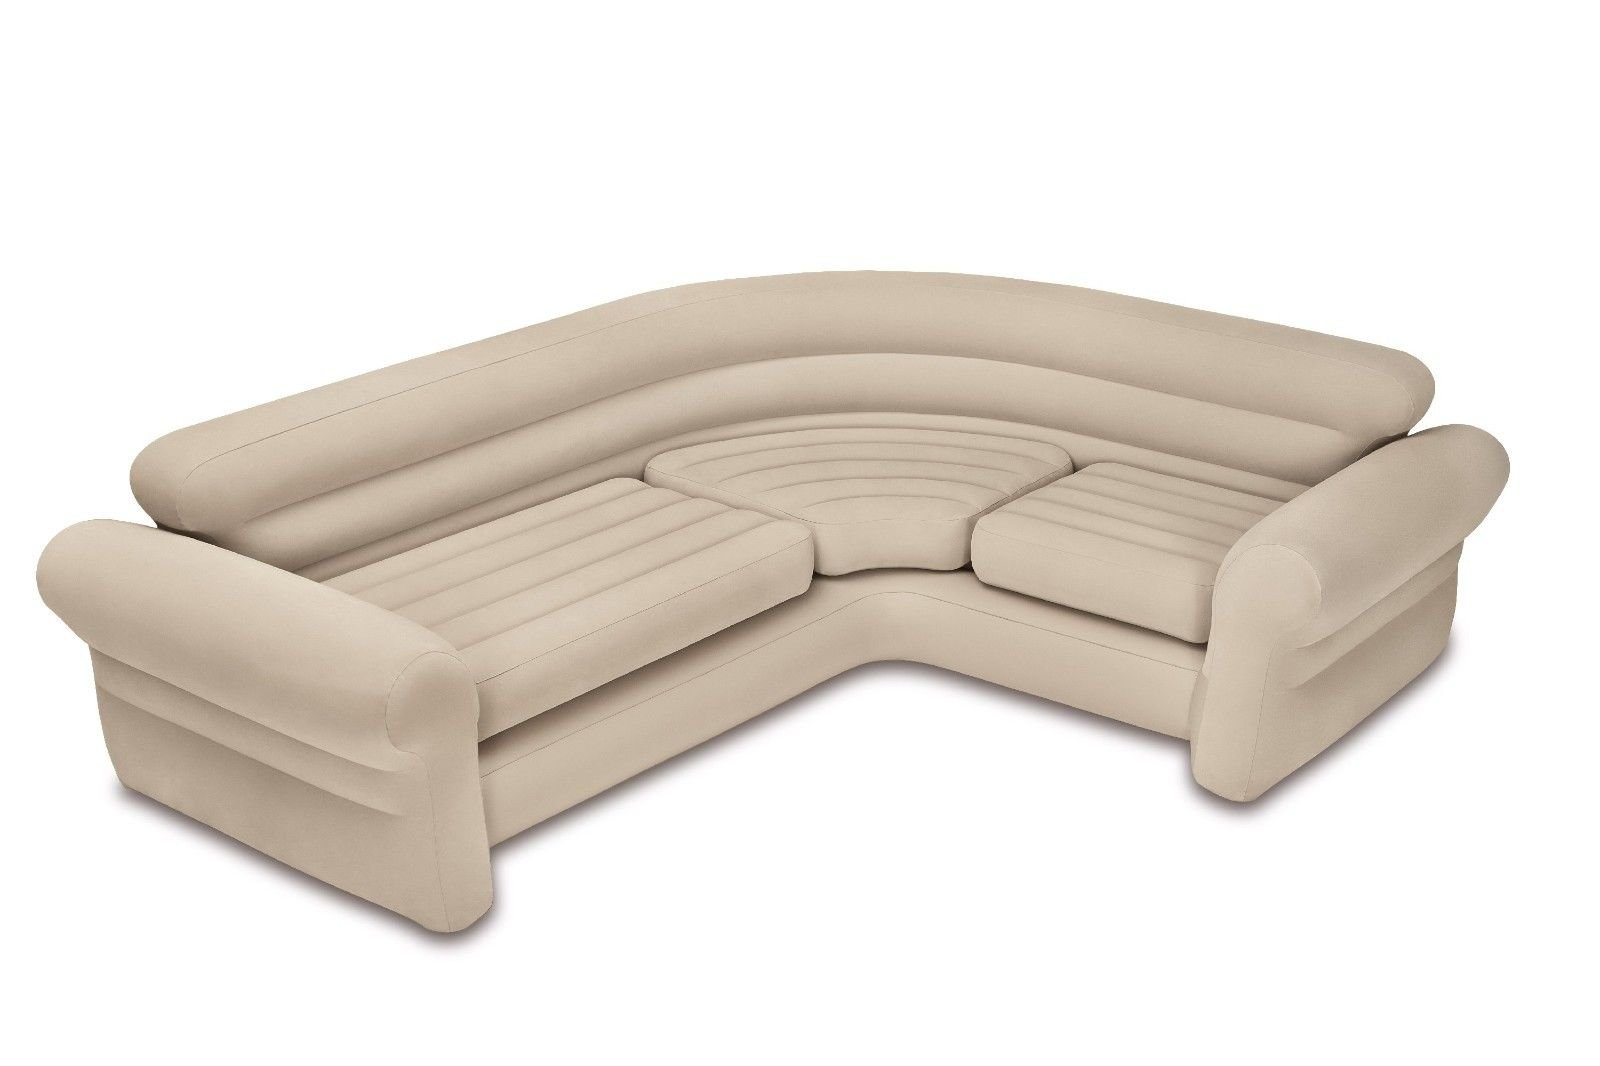 Sectional Sleeper Sofa Futon Living Room Lounge Inflatable Couch Bed  Loveseat